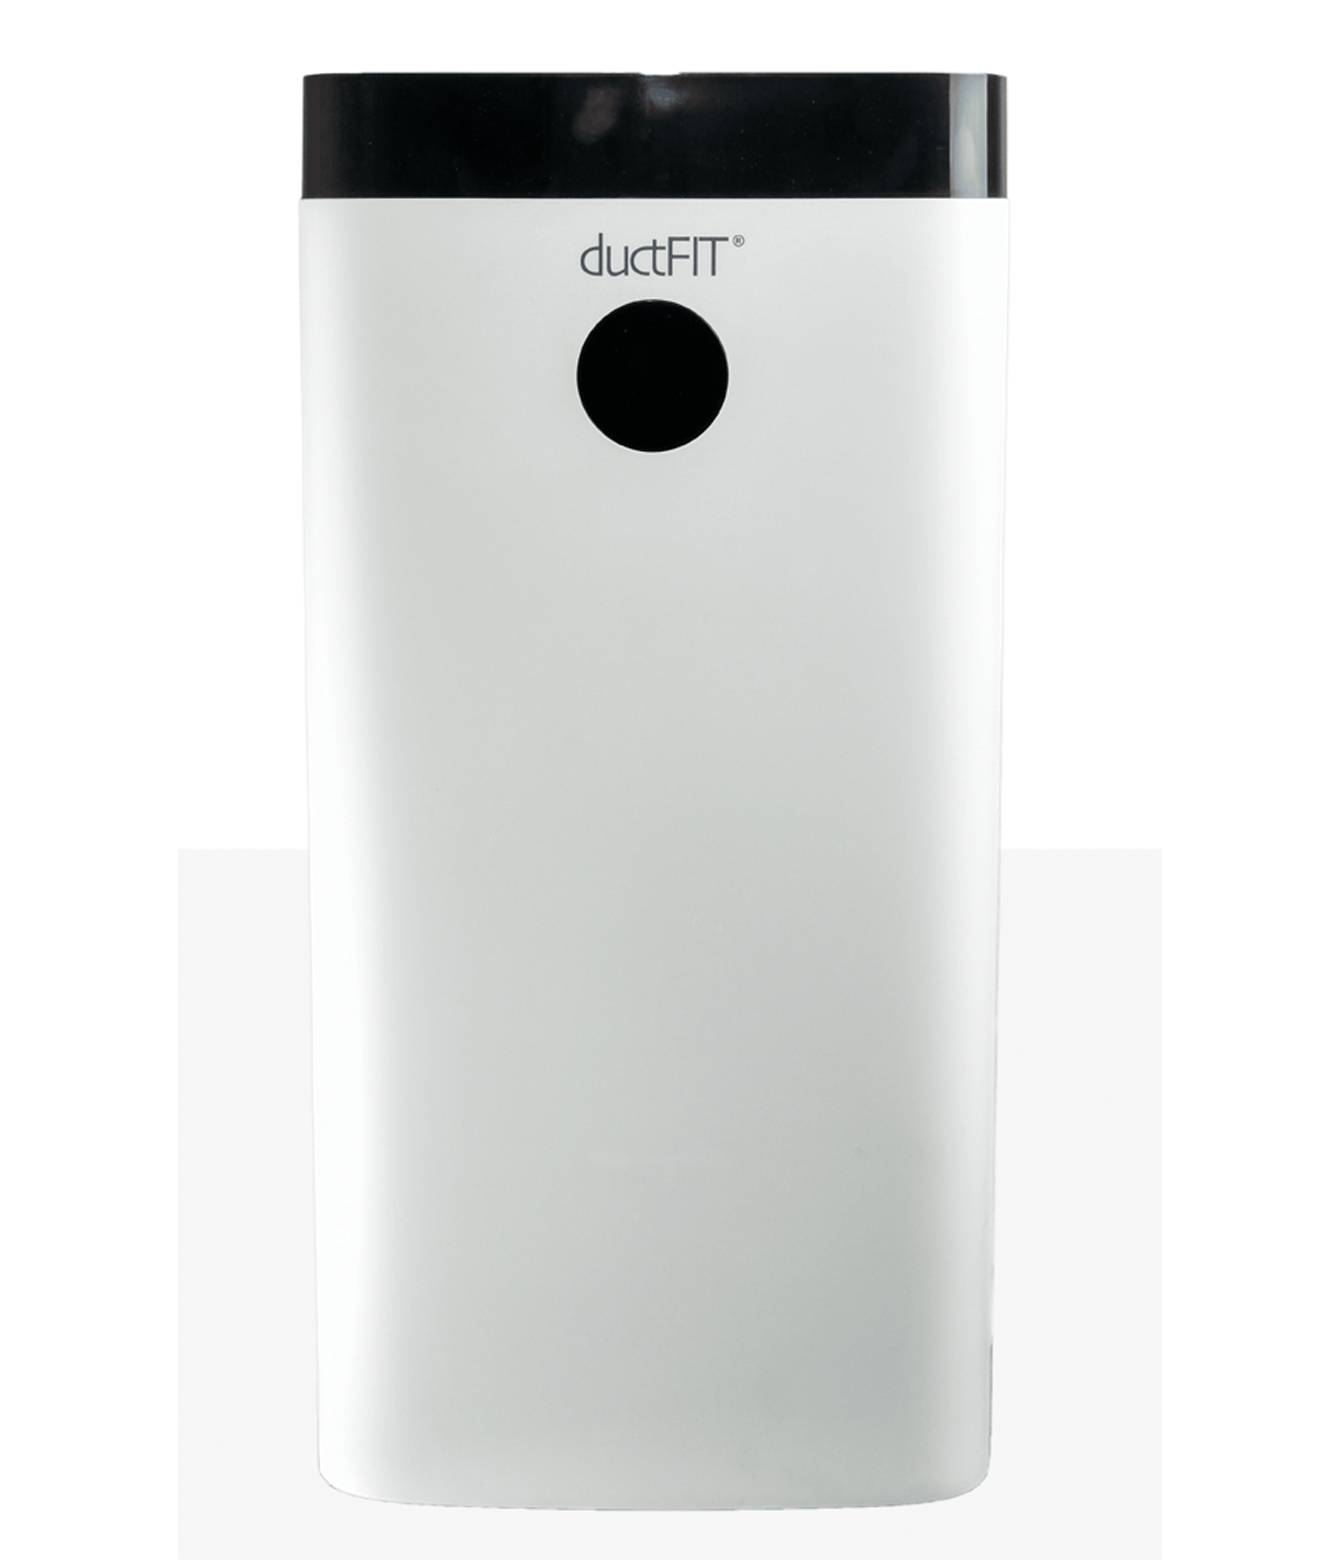 ductfit mobile